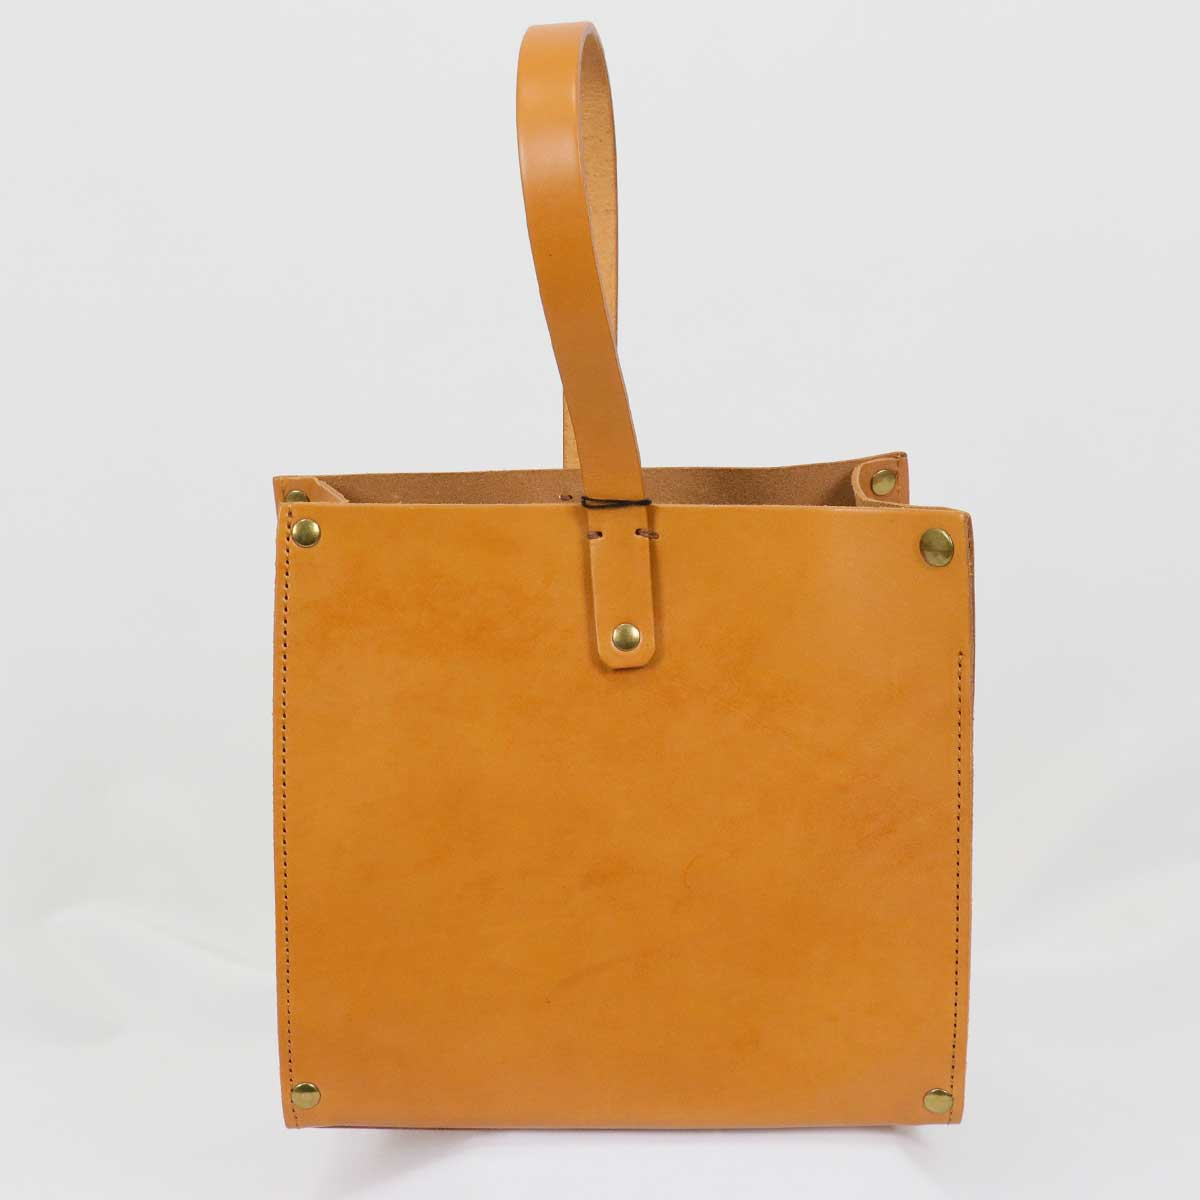 TIDE WAY タイドウェイ トートバッグ NUME ONE HANDLE TOTE